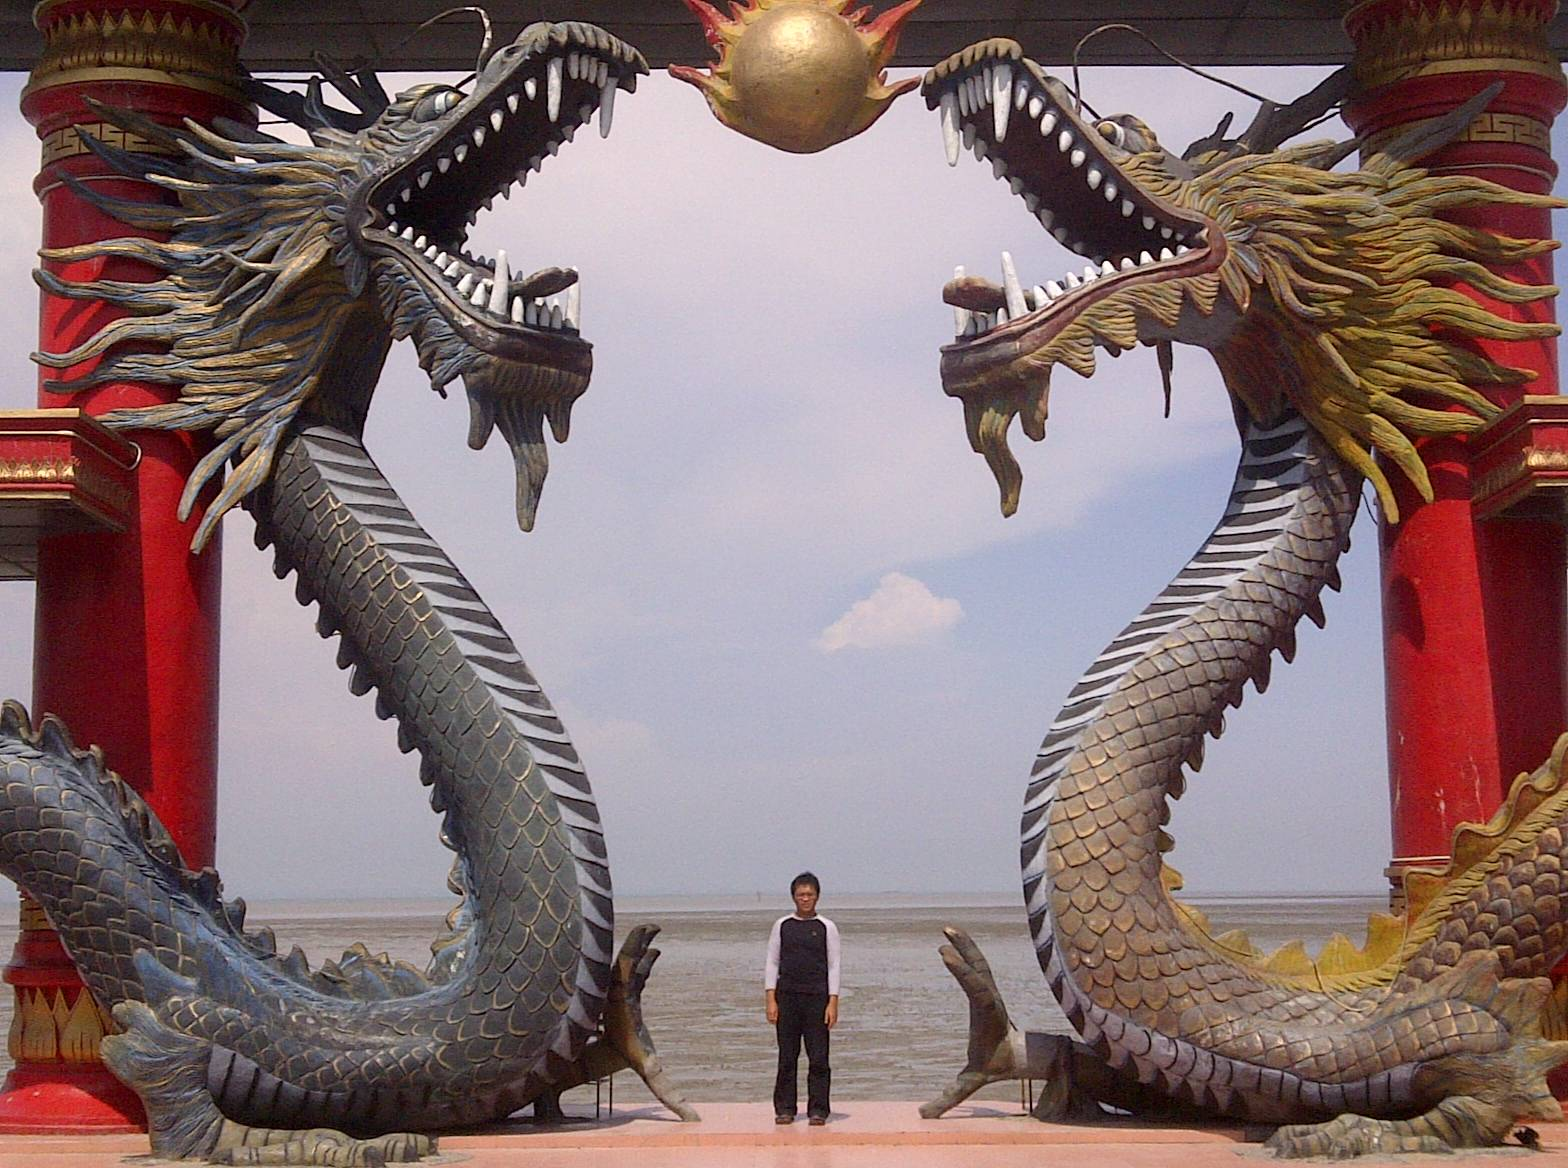 Giant Dragon Statue Here Be Dragons Amazing Statues And Sculptures Of Dragons